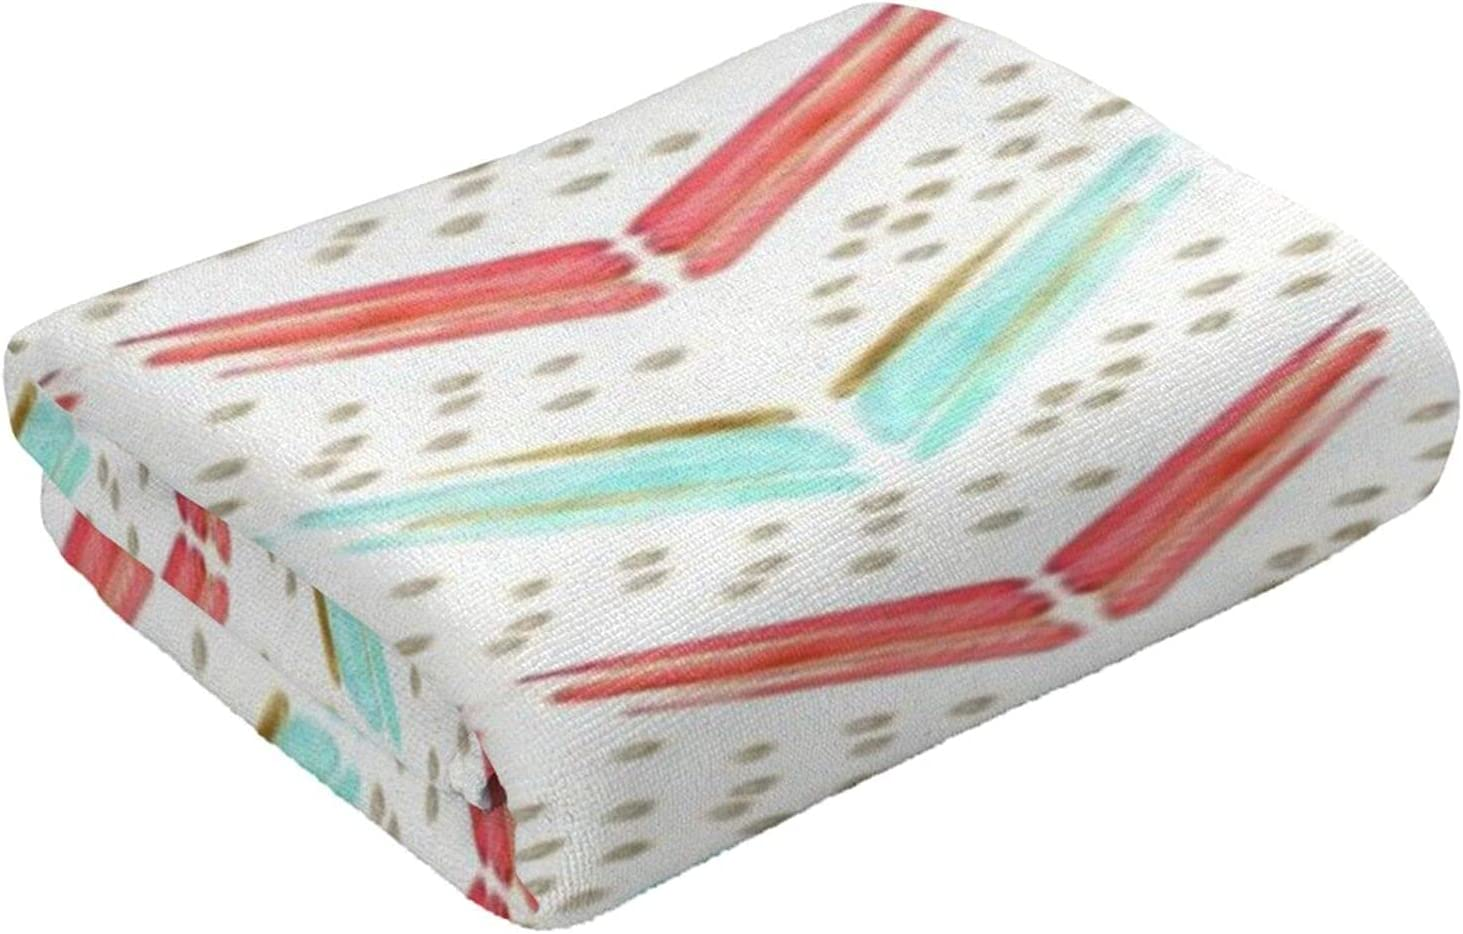 Towels Hand Washcloths 27.5x12 Polyester Inch Limited time for Max 64% OFF free shipping Fingert